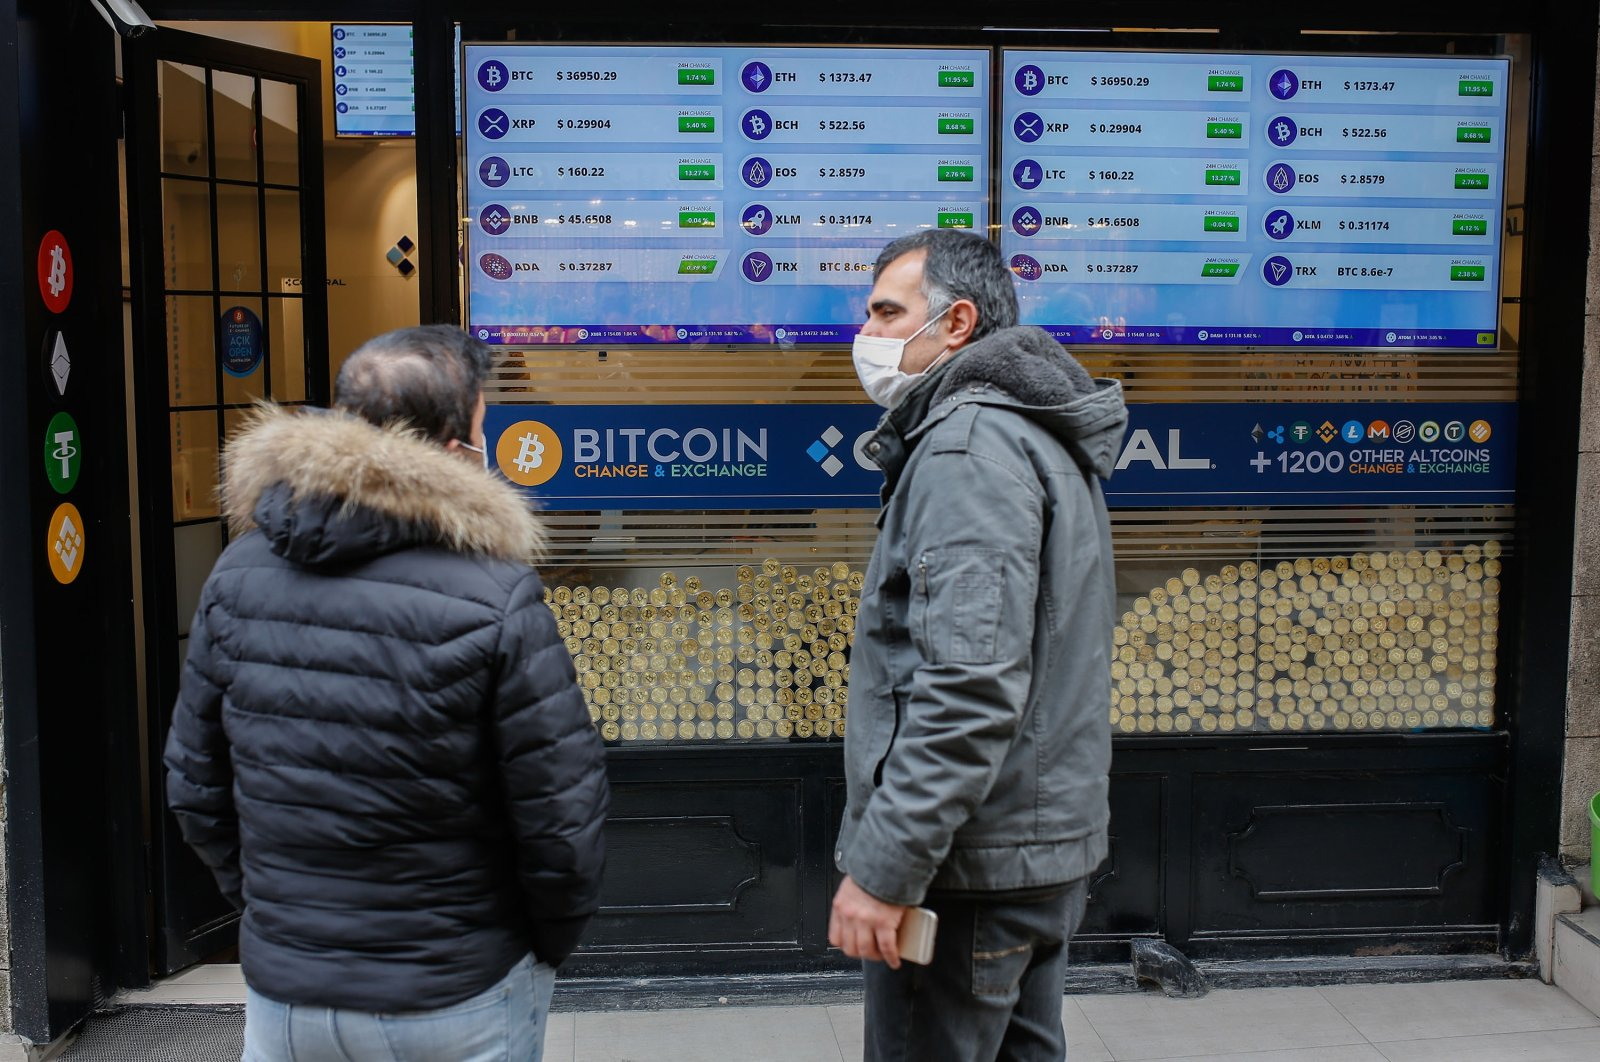 Two men stand in front of a Bitcoin shop in Istanbul, Turkey, Jan. 19, 2021. (Shutterstock Photo)